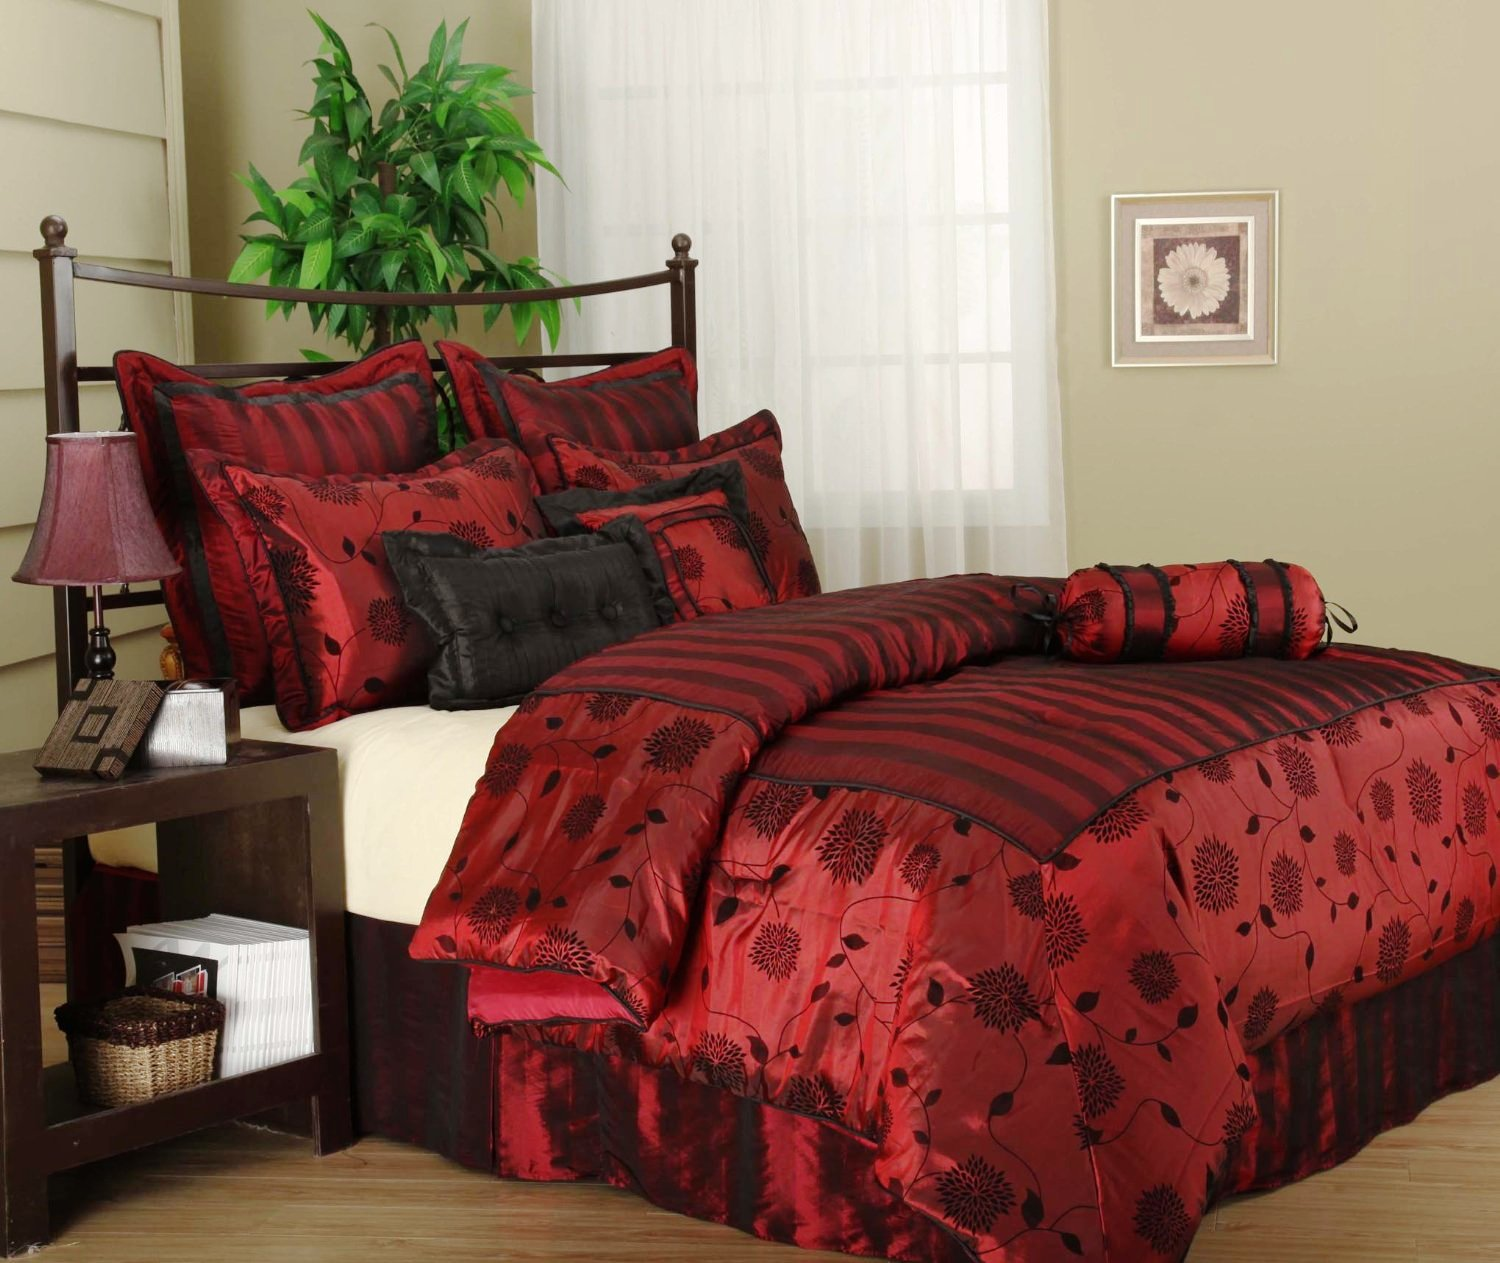 Romantic Black And Red Bedroom 100+ ideas brown black red black romantic black and white bedrooms